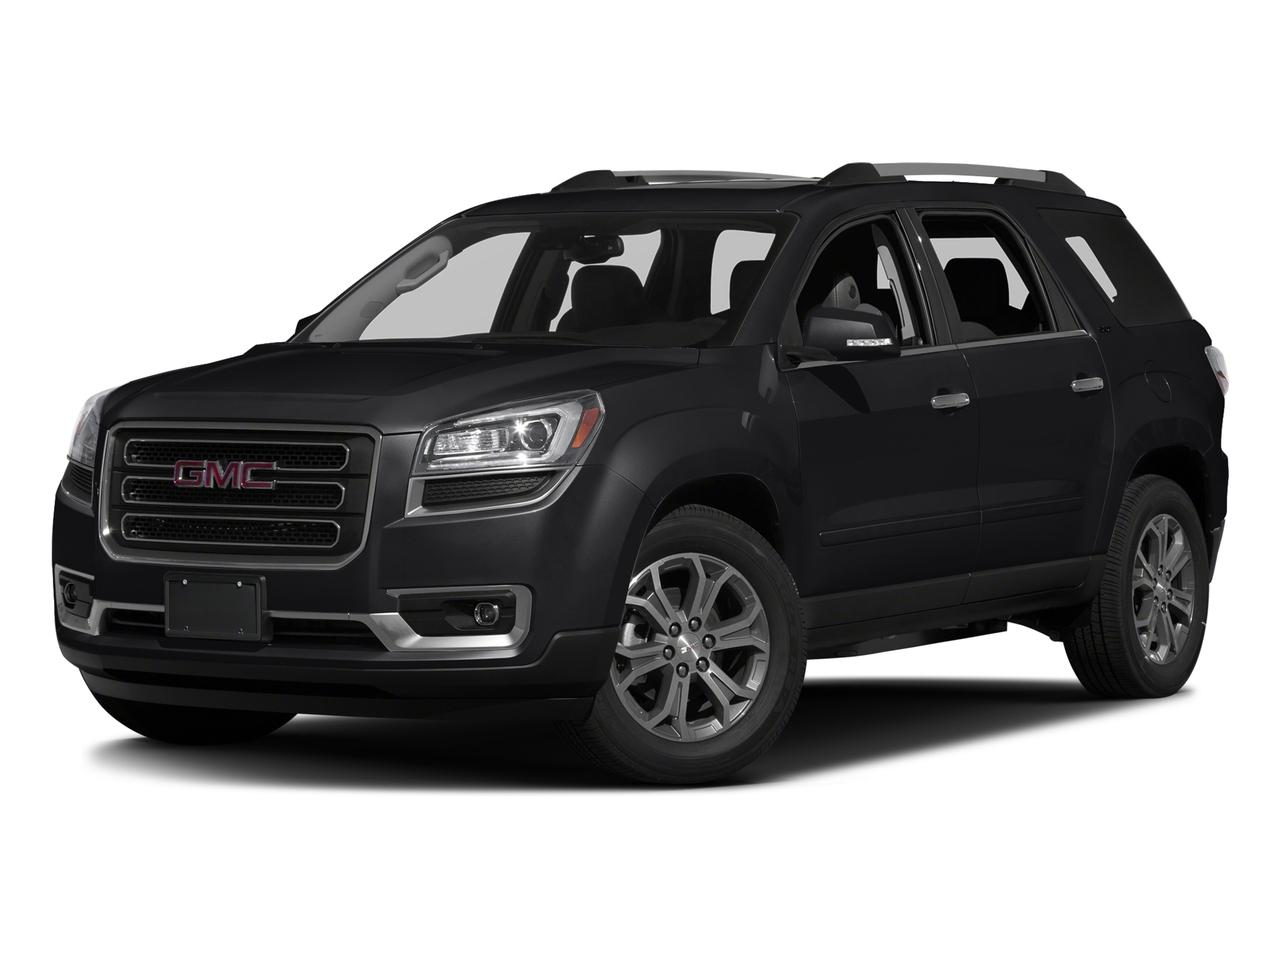 2016 GMC Acadia Vehicle Photo in Vincennes, IN 47591